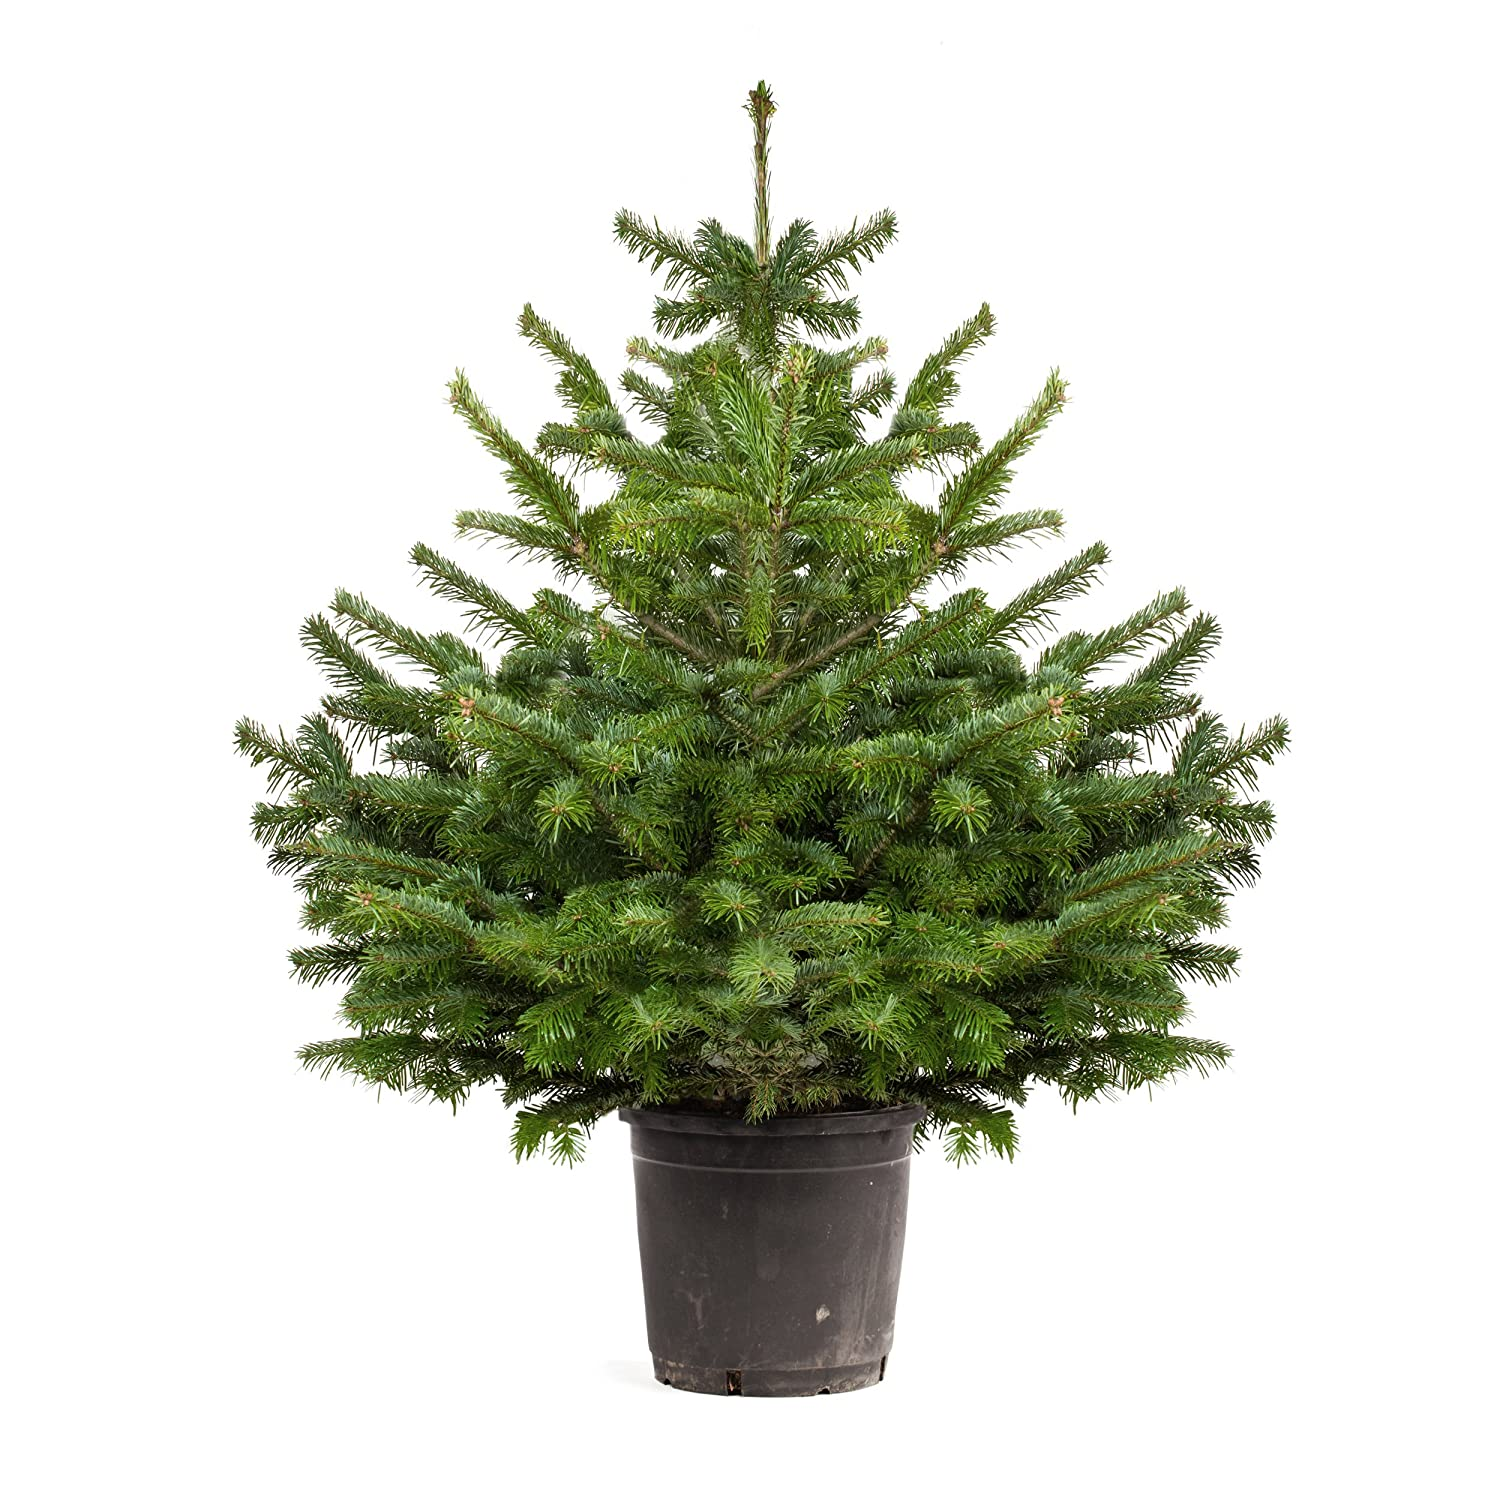 pot grown norway spruce living christmas tree 1 12 m tall - Small Live Christmas Trees